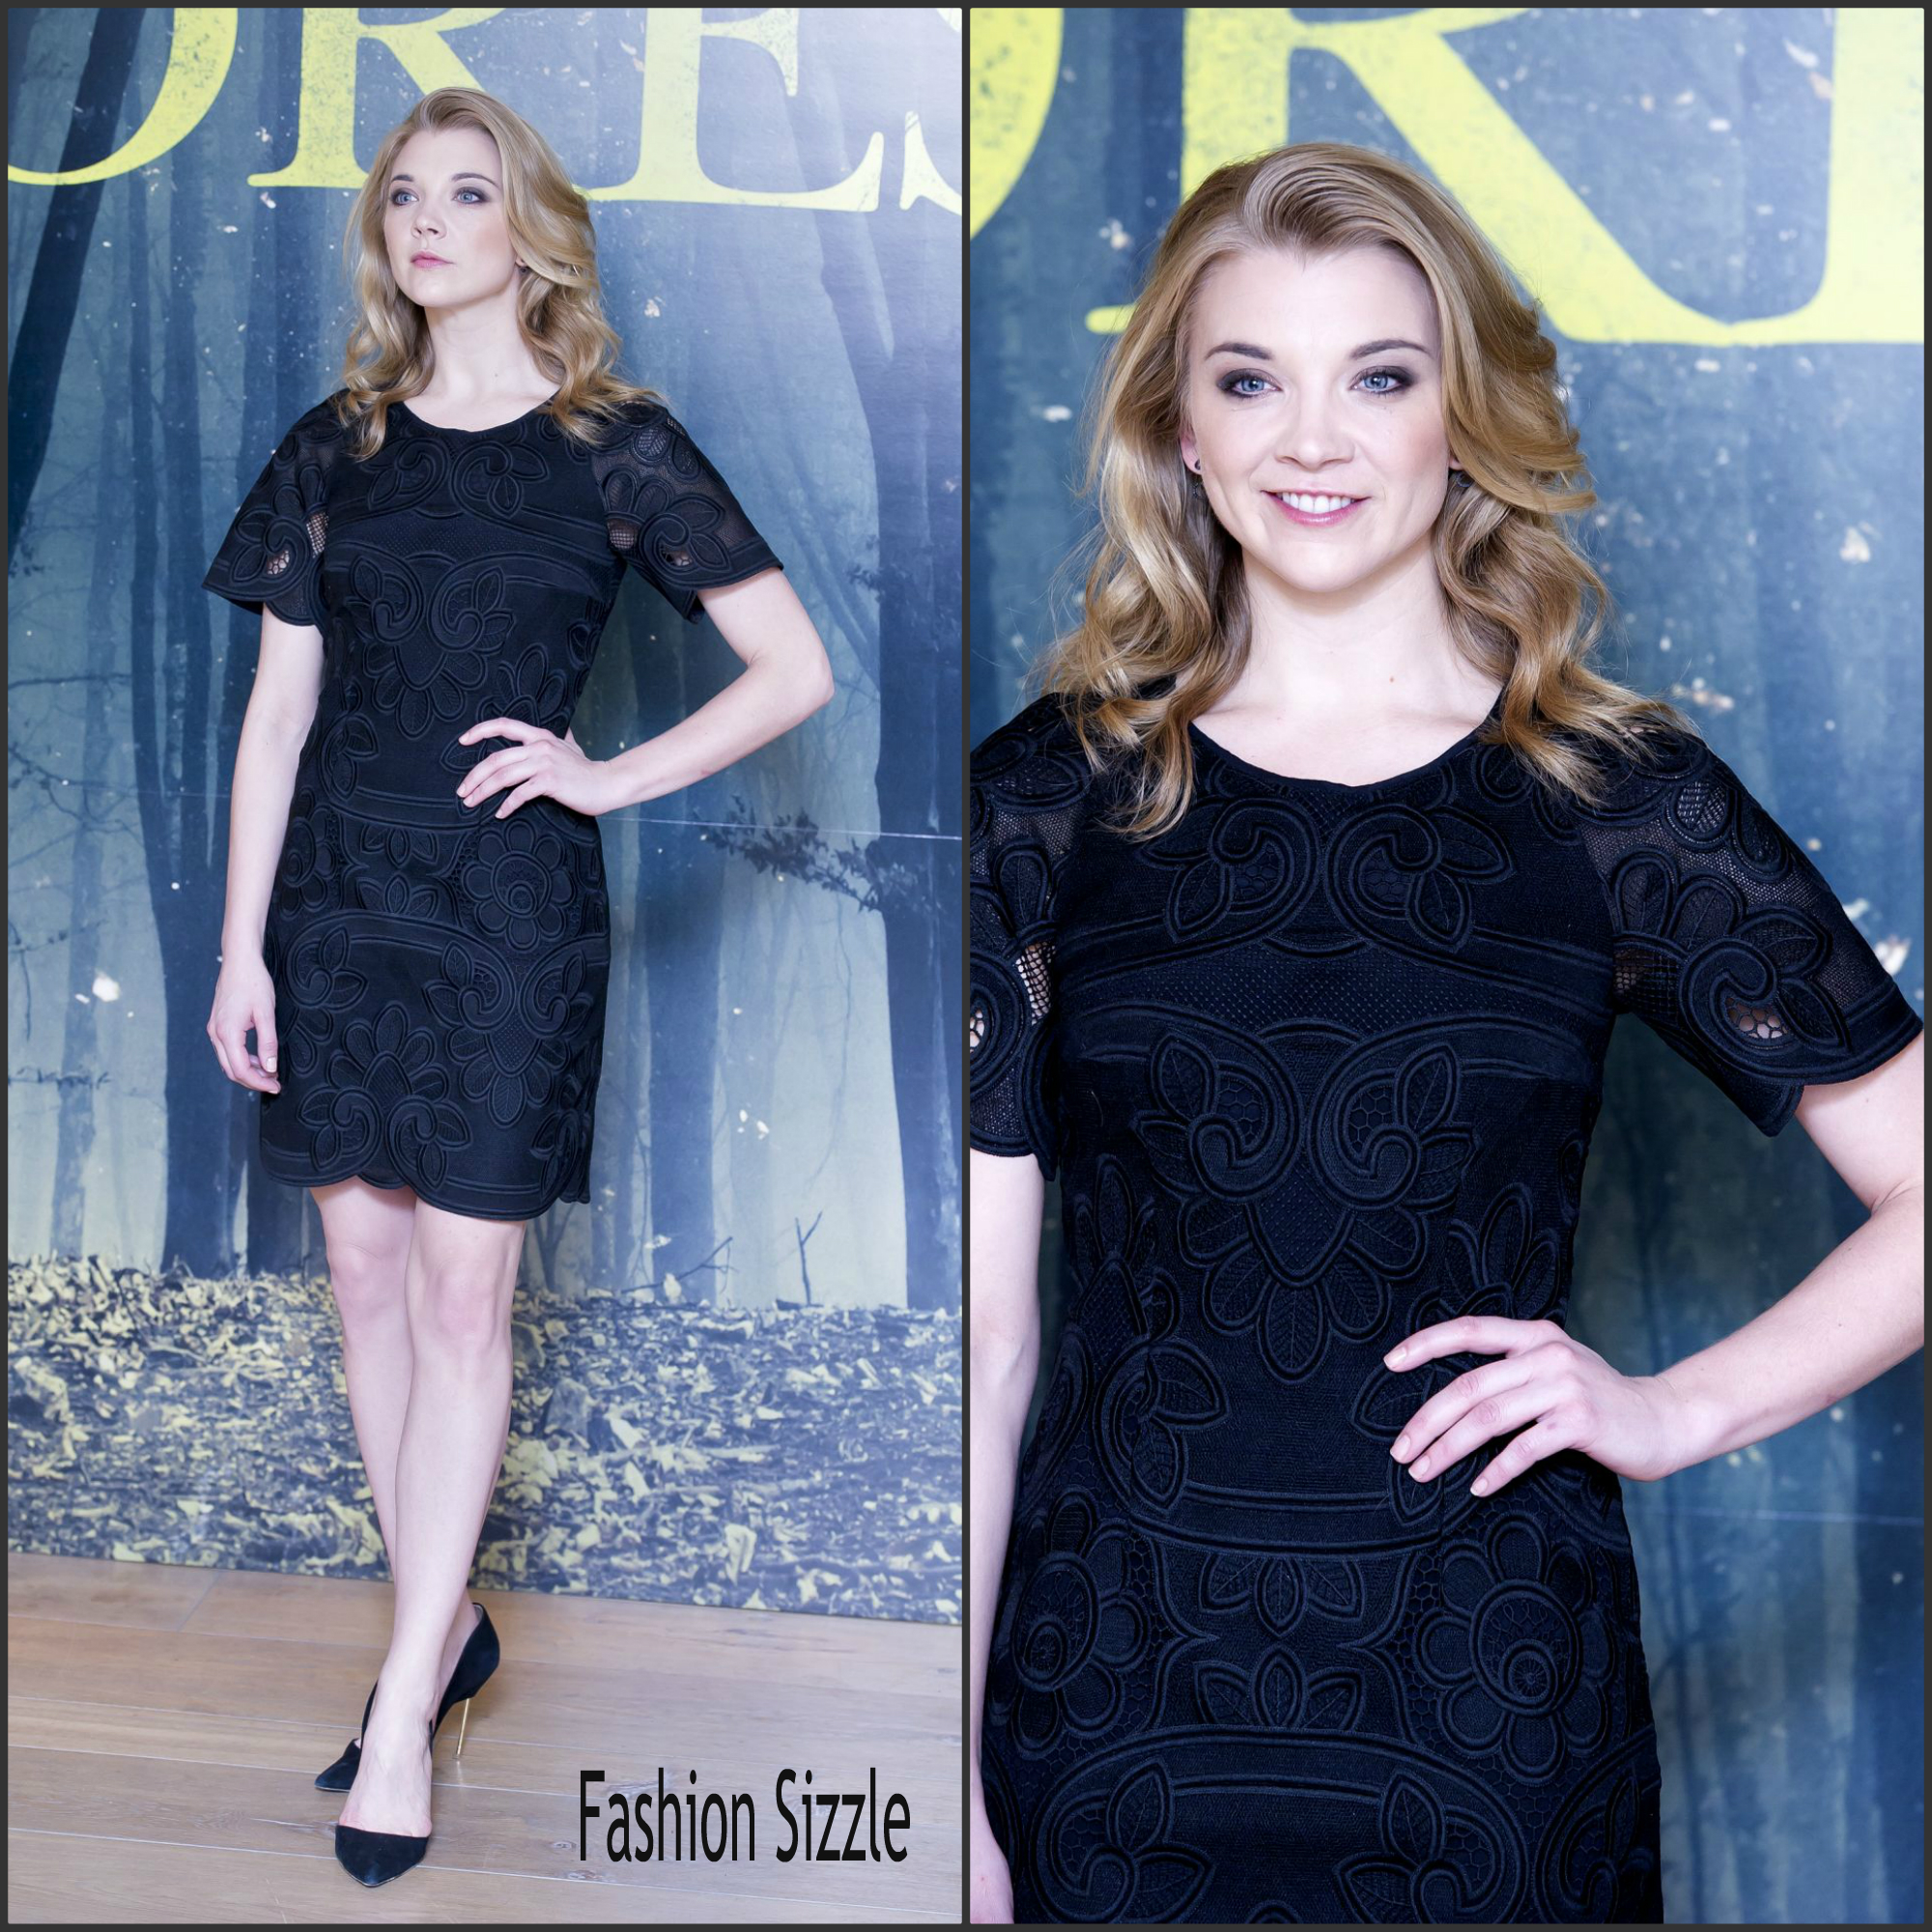 natalie-dormer-in-blumarine-the-forest-london-photocall